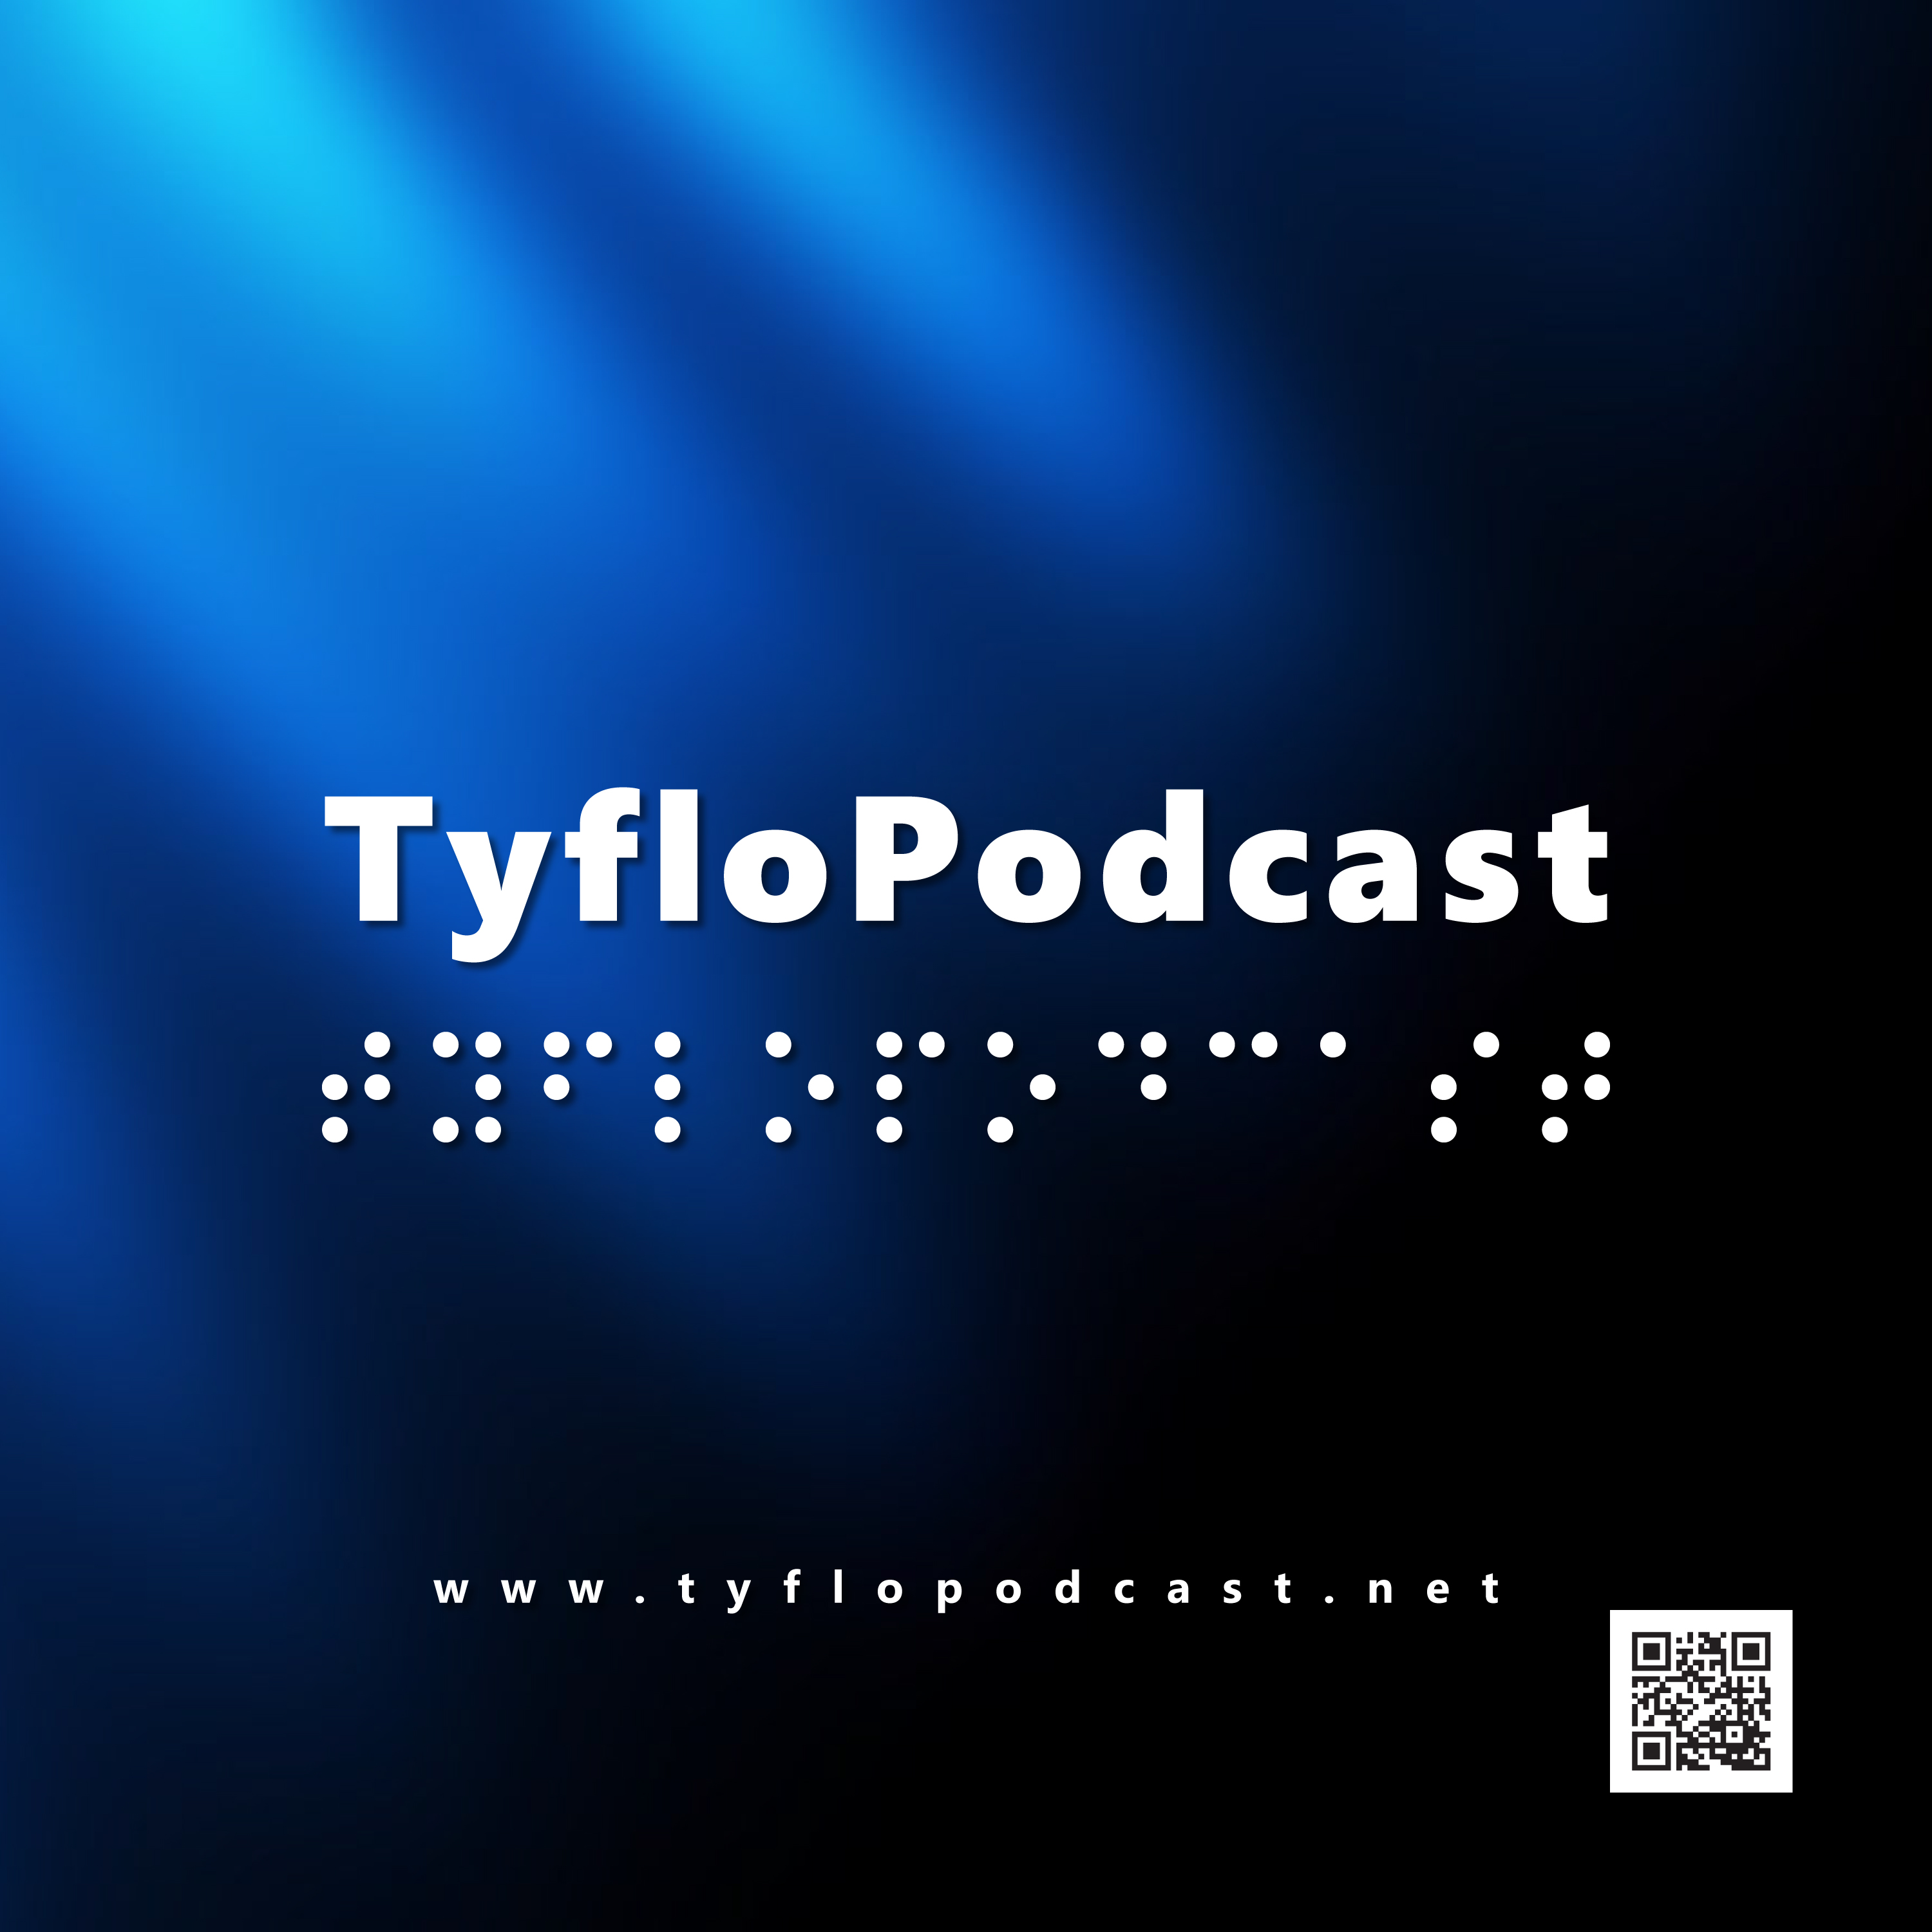 TyfloPodcast